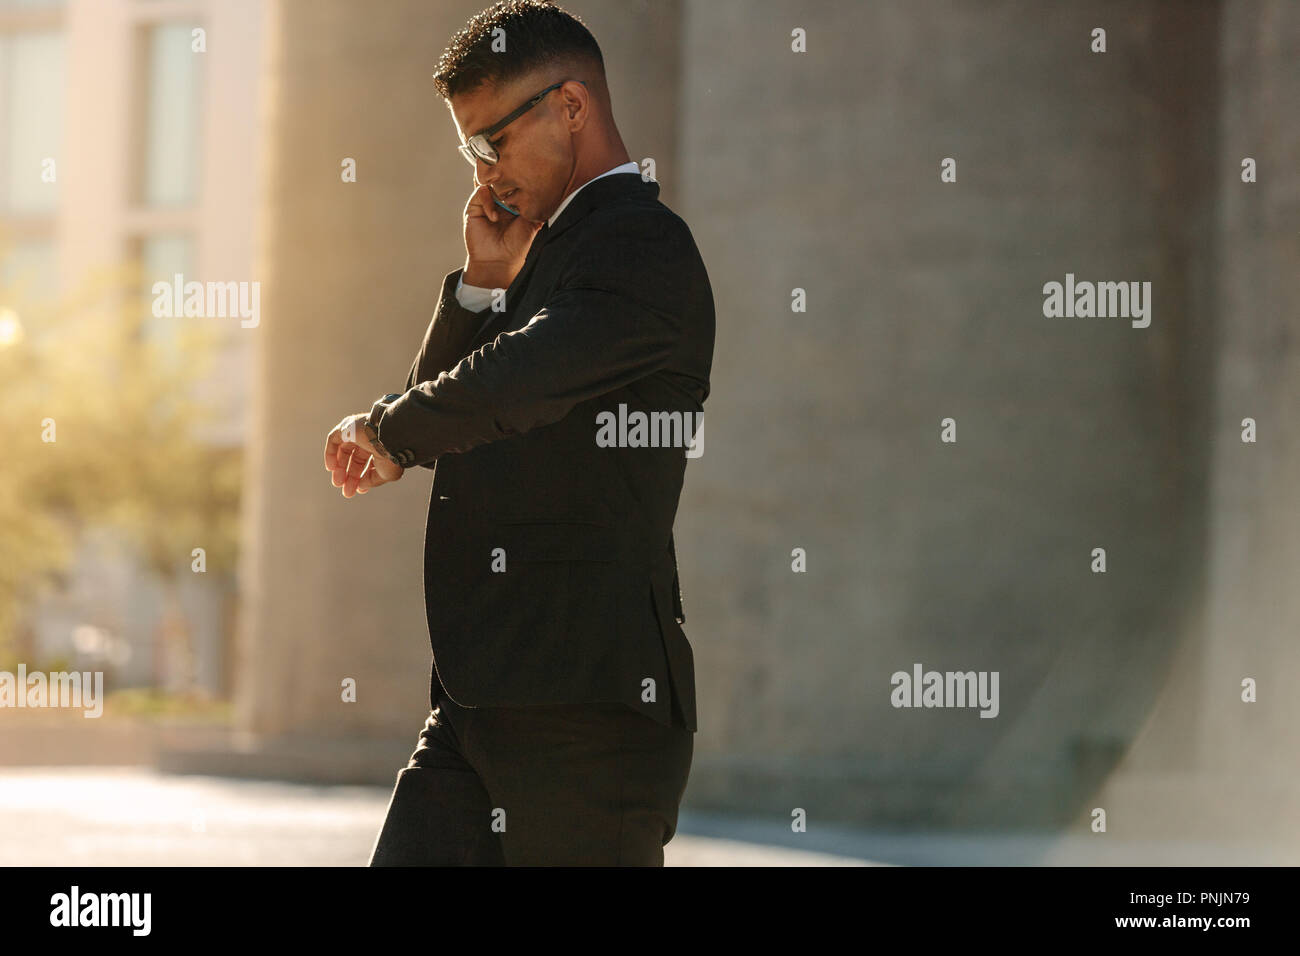 Man in formal clothes looking at his wrist watch and talking over mobile phone while walking on street. Busy office going person walking on street loo - Stock Image